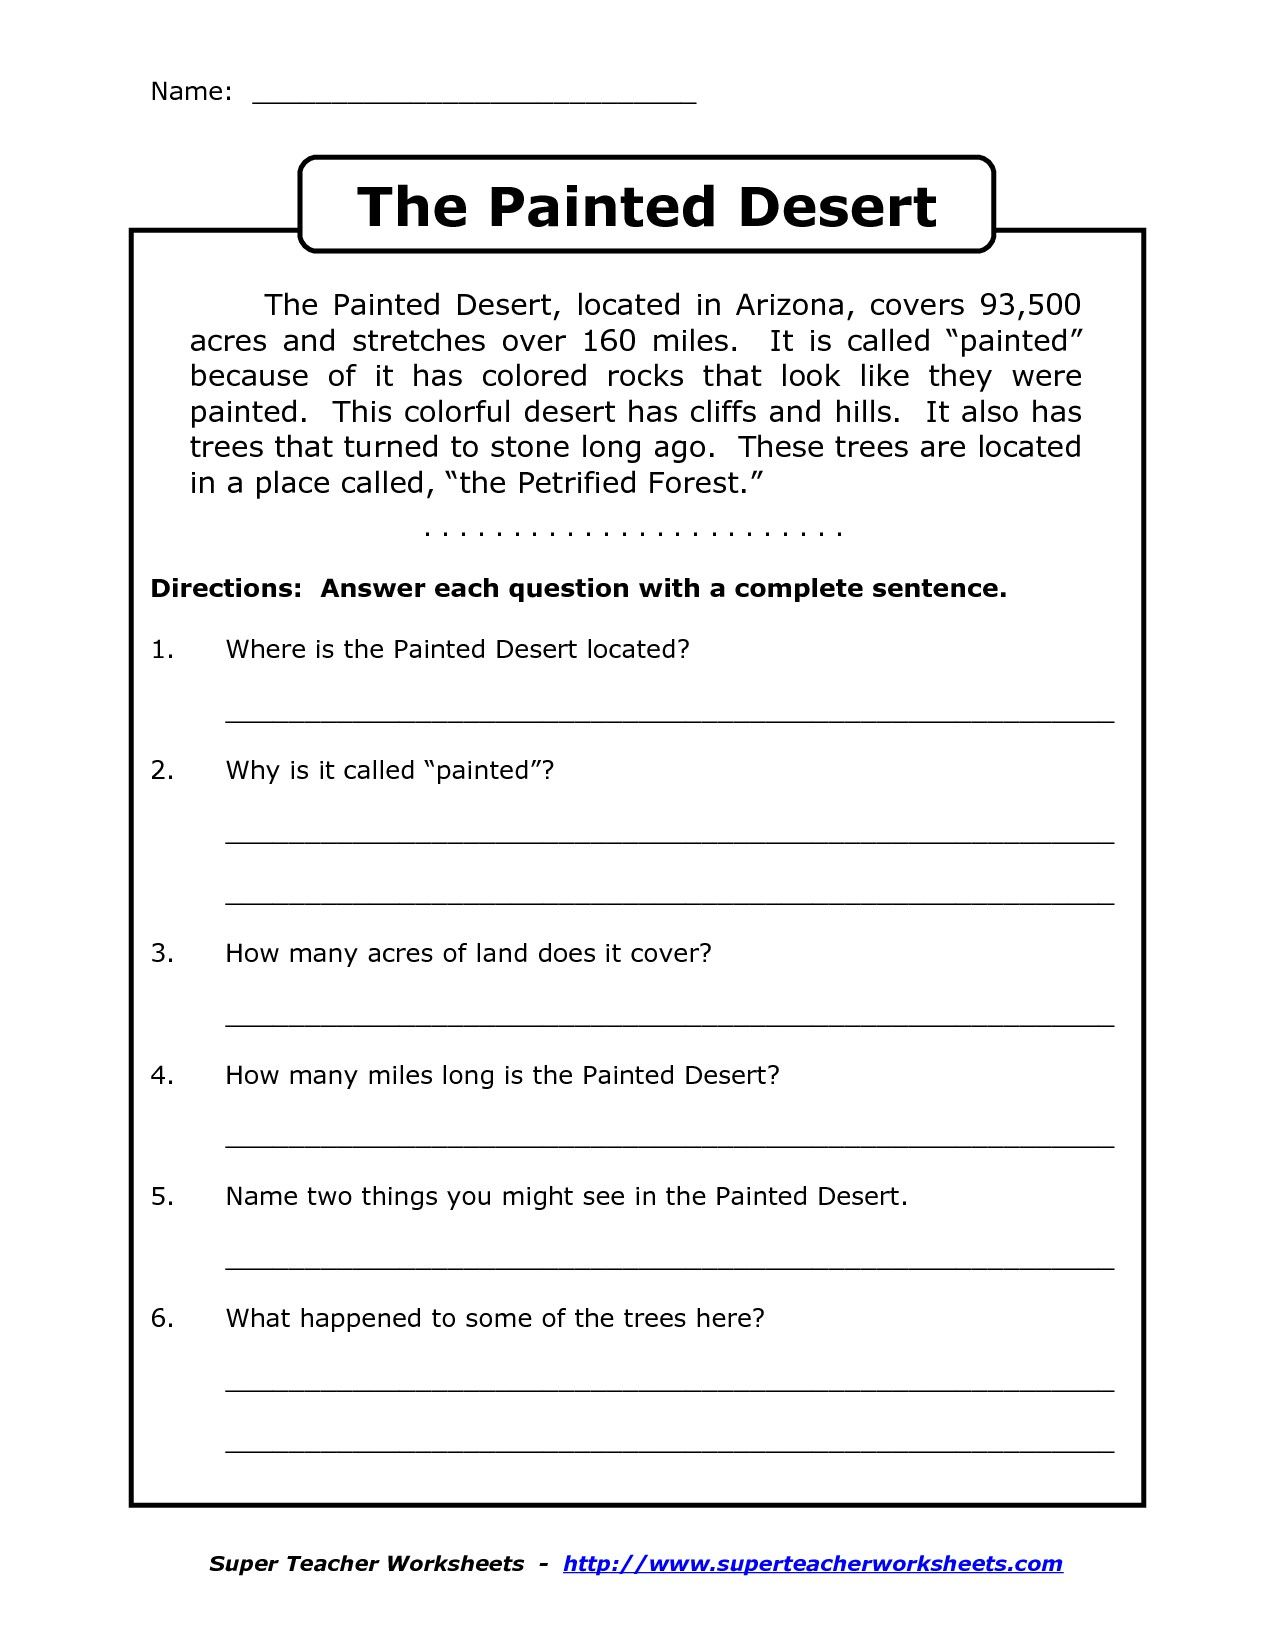 Worksheet 4th Grade Reading Printable Worksheets Mifirental Free – Printable Worksheets for 4th Grade